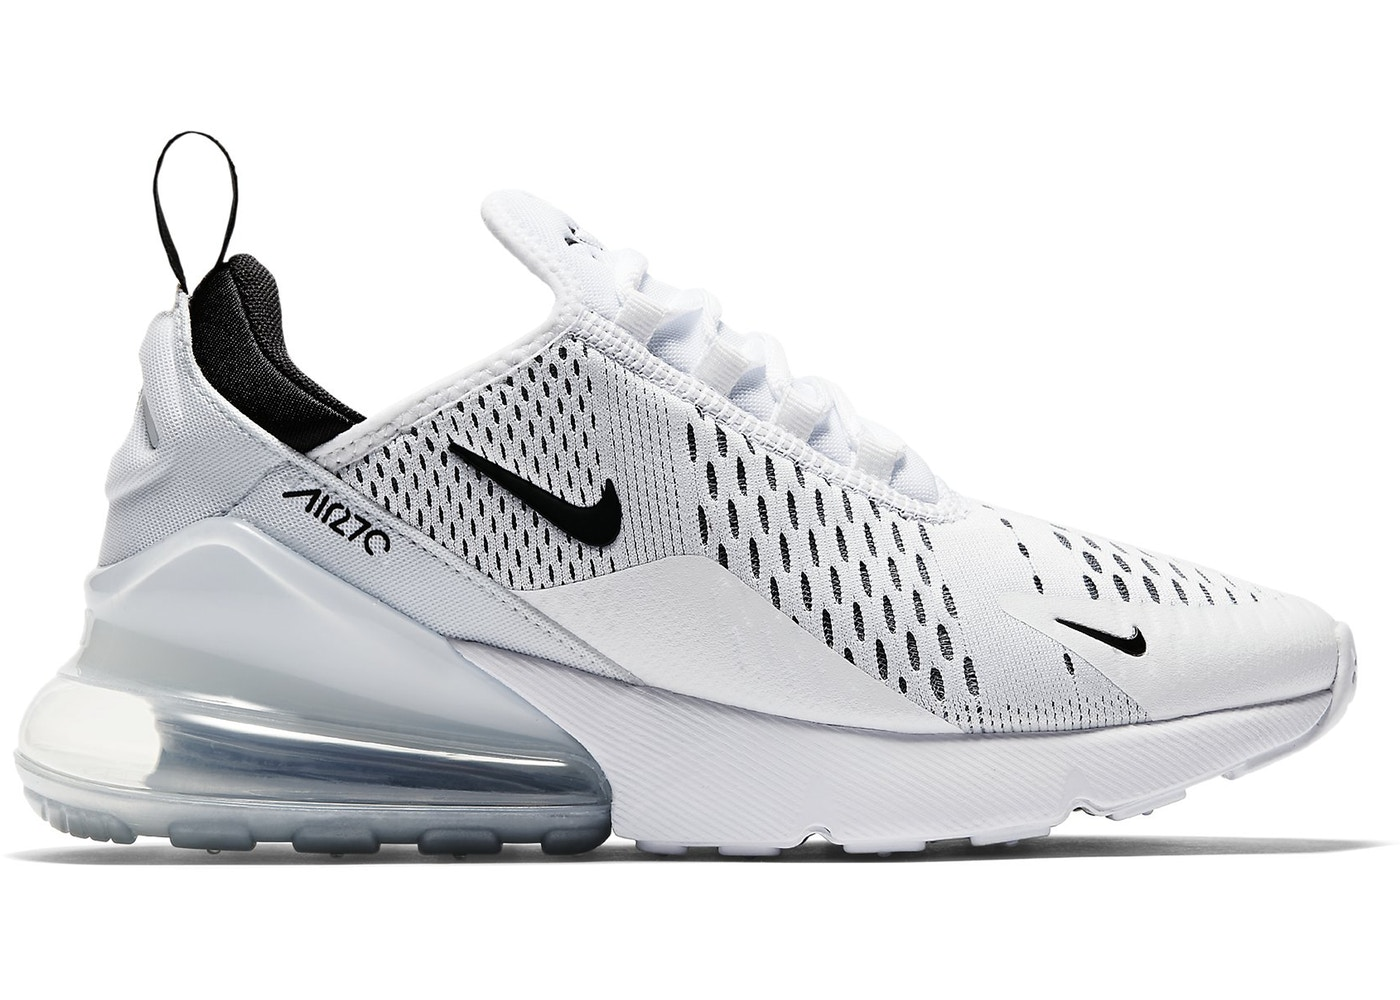 05a71926 Sell. or Ask. Size: 6W. View All Bids. Air Max 270 White Black ...